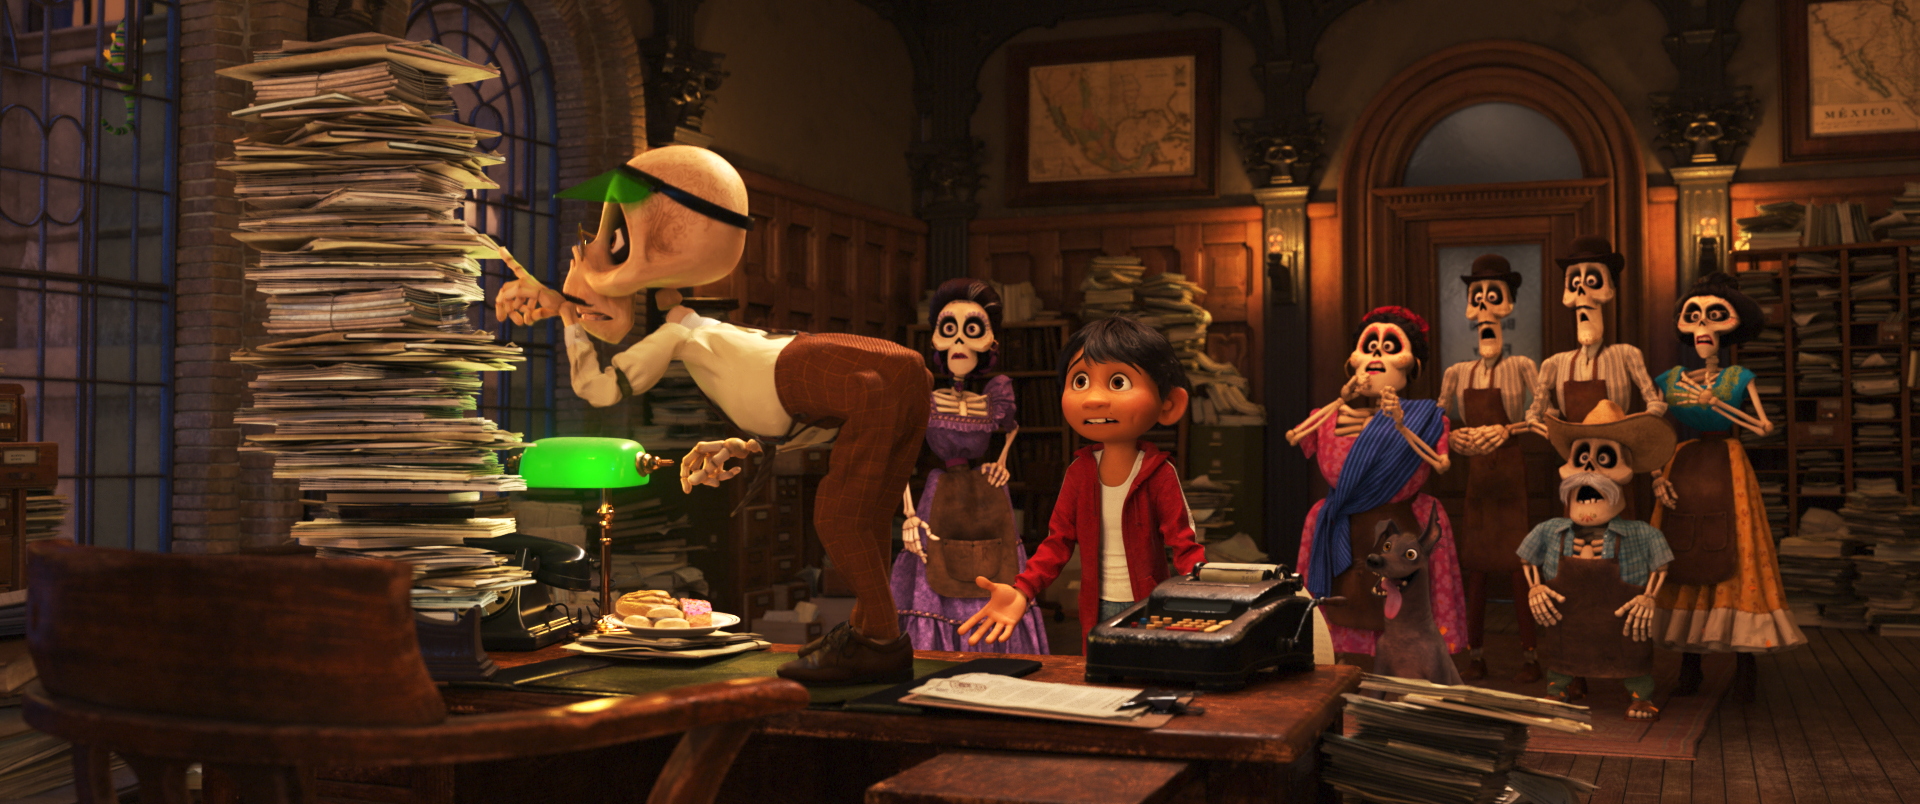 Disney Pixar's COCO – New Trailer & Poster Now Available